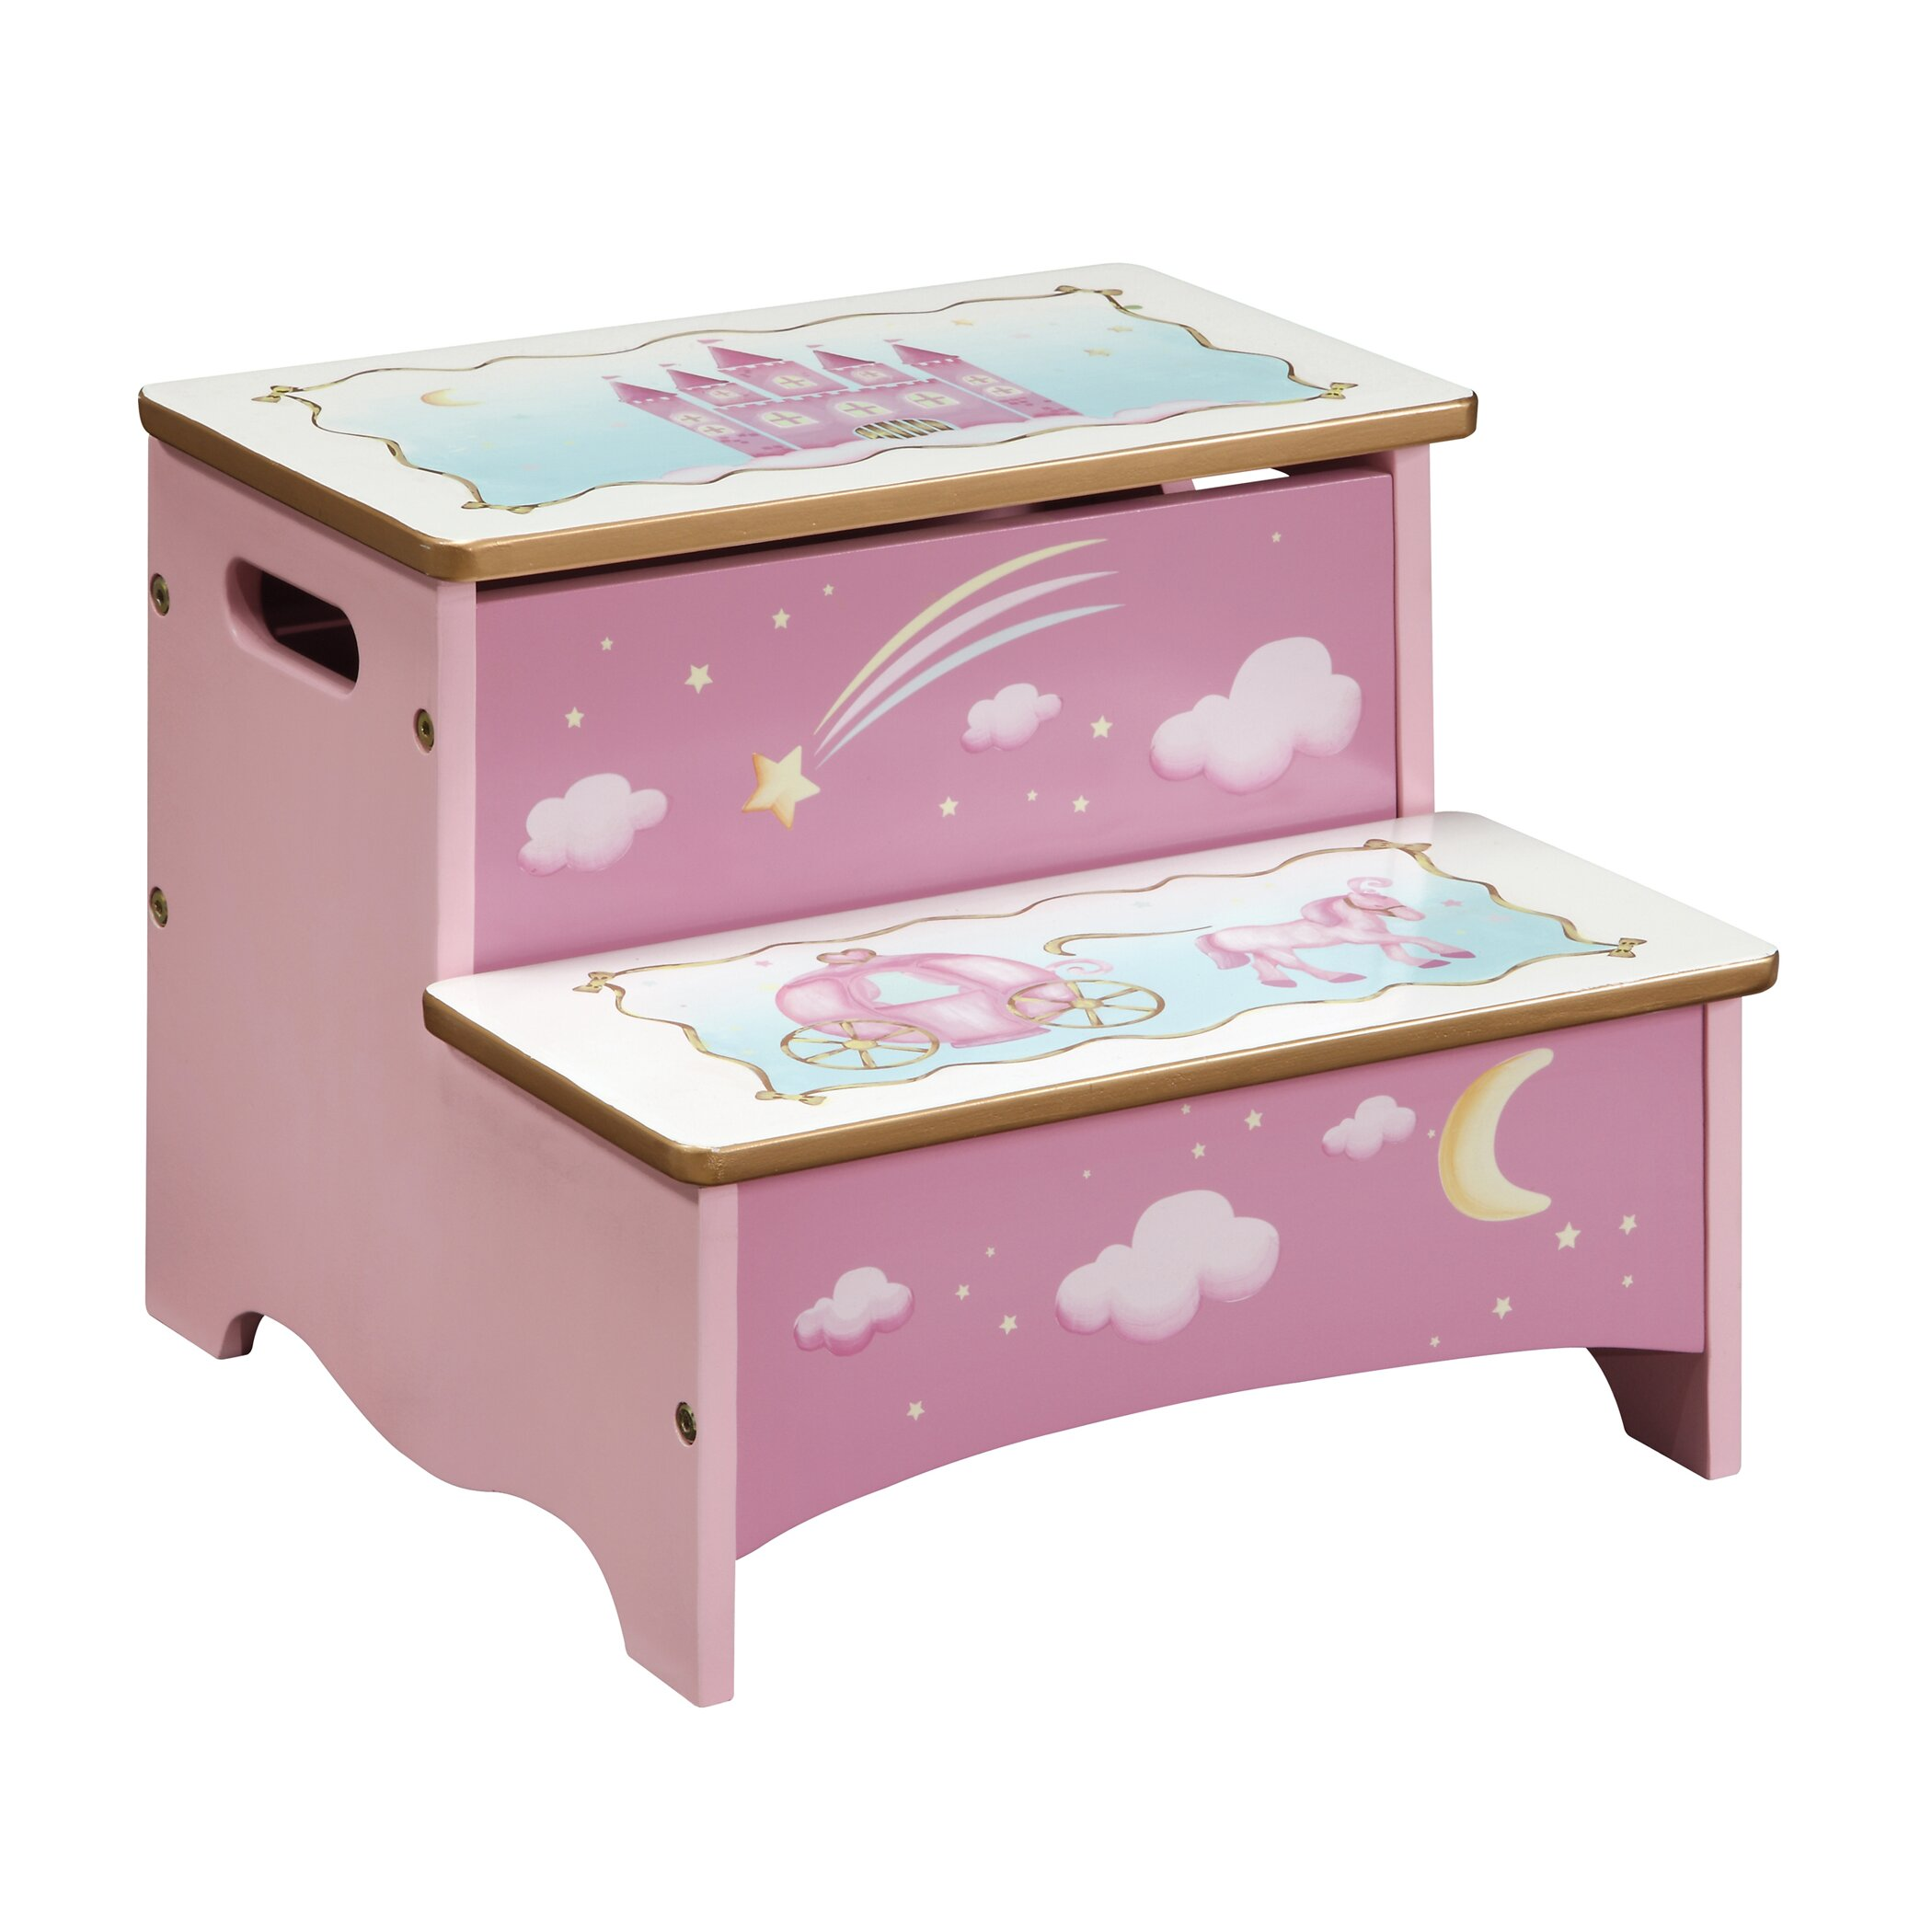 image quarter bamboo bathroom stool guidecraft princess  step step stool with storage